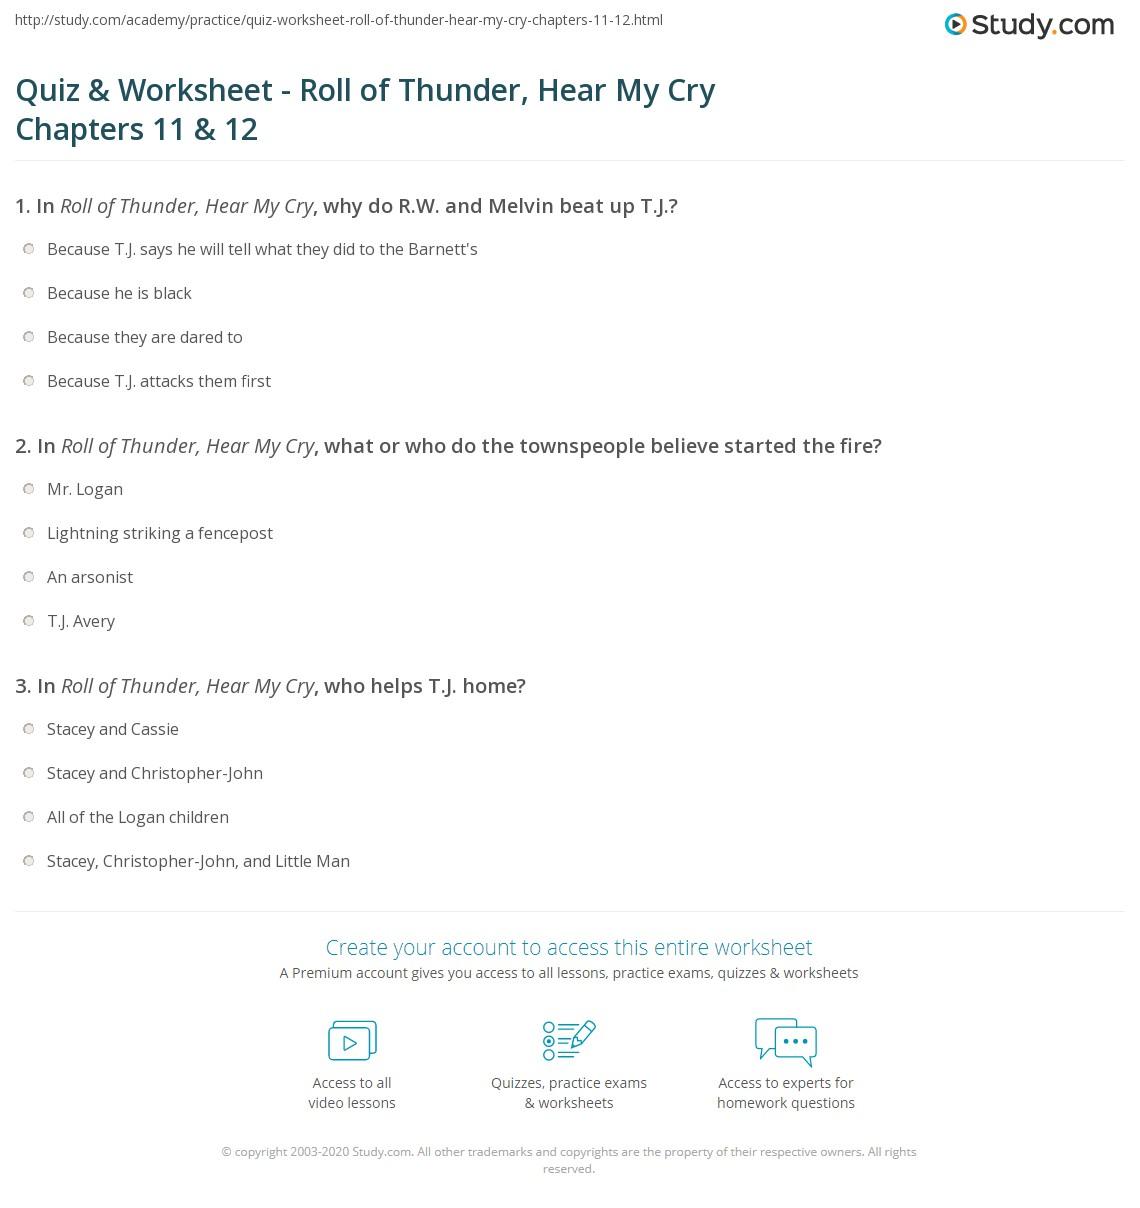 quiz worksheet roll of thunder hear my cry chapters 11 12. Black Bedroom Furniture Sets. Home Design Ideas